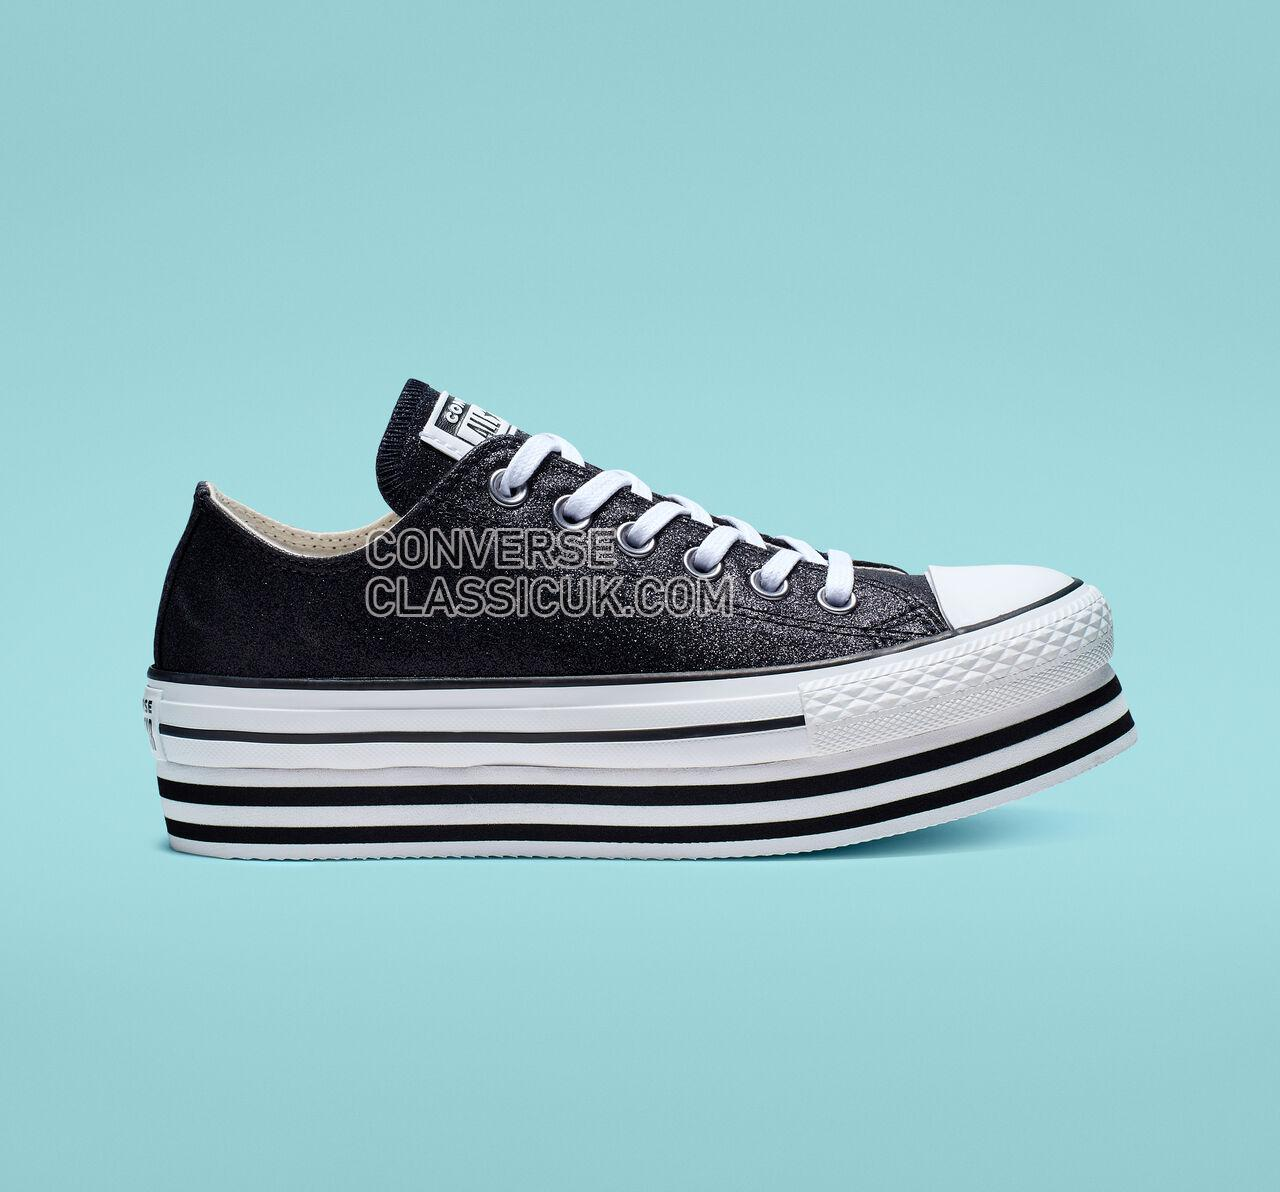 Converse Chuck Taylor All Star Shiny Metal Platform Low Top Womens 564877C Black/Black/White Shoes